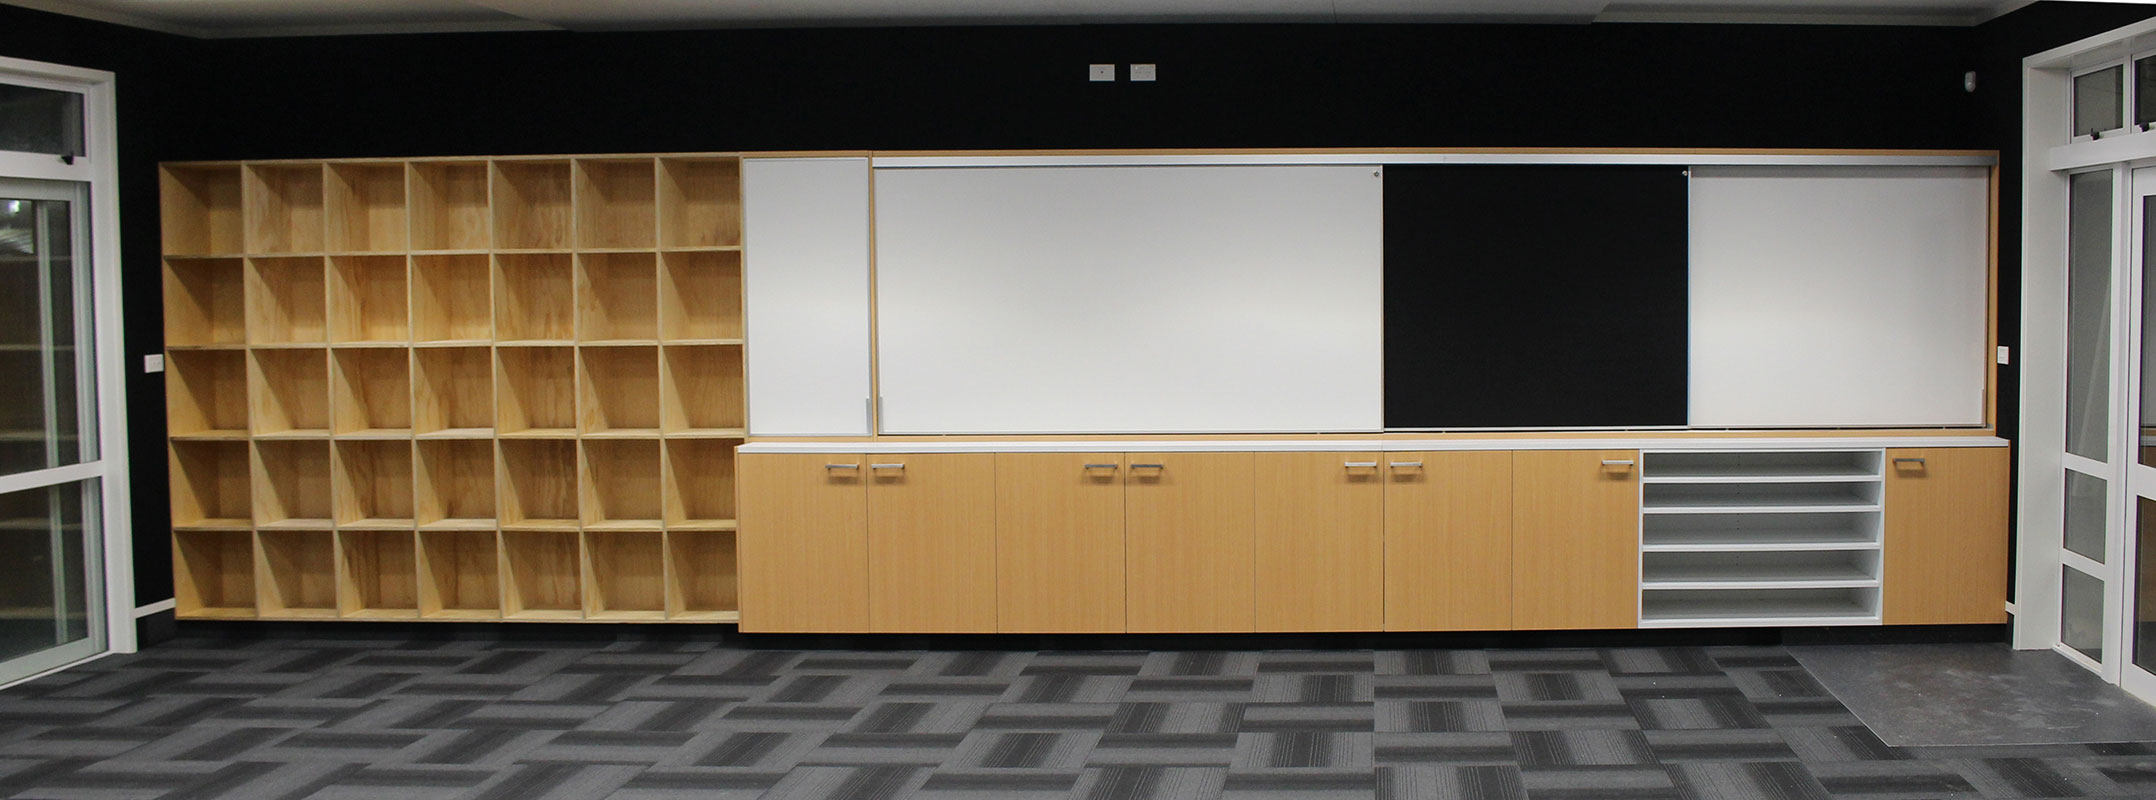 School Cabinetry